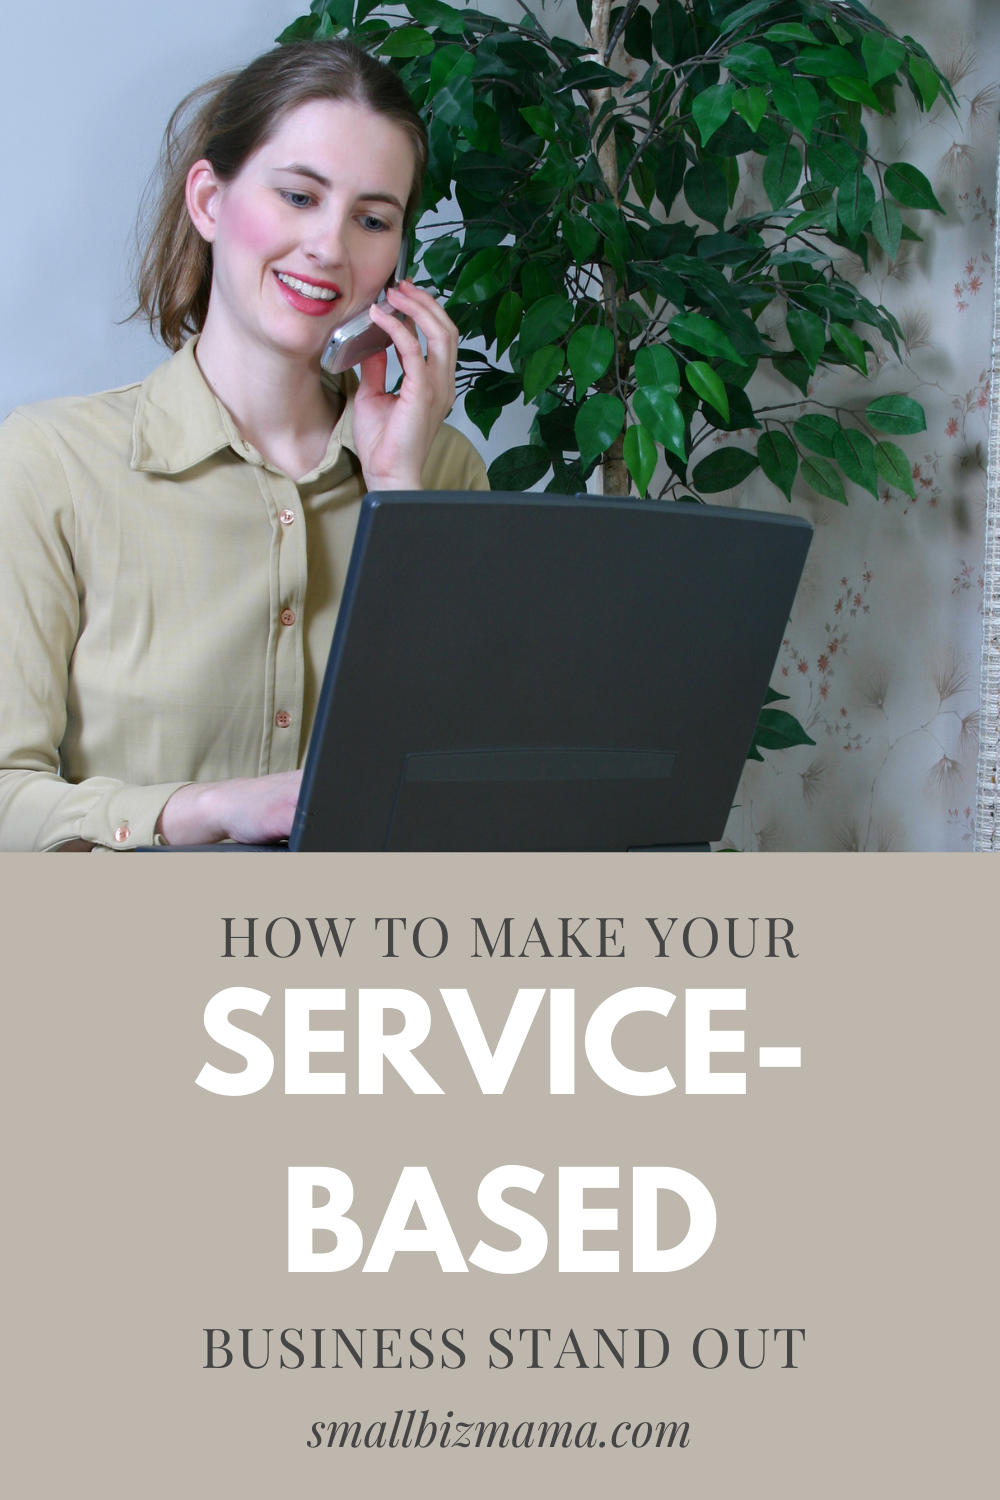 How to make your service based business stand out